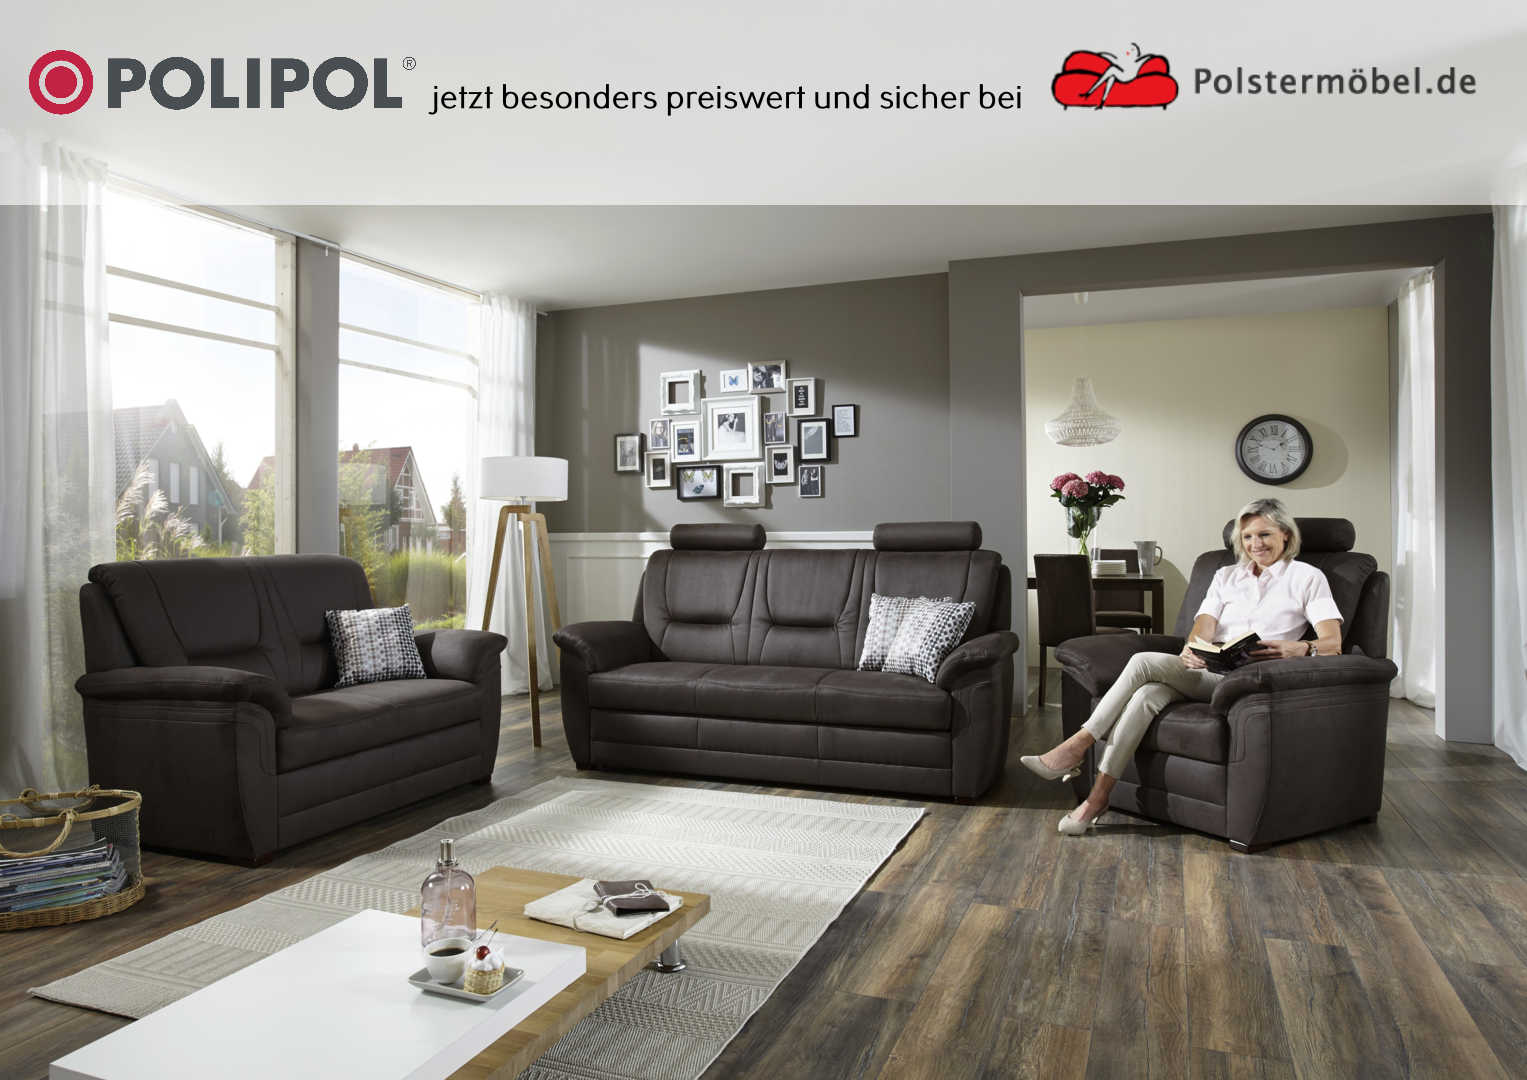 polipol queenline a polsterm. Black Bedroom Furniture Sets. Home Design Ideas